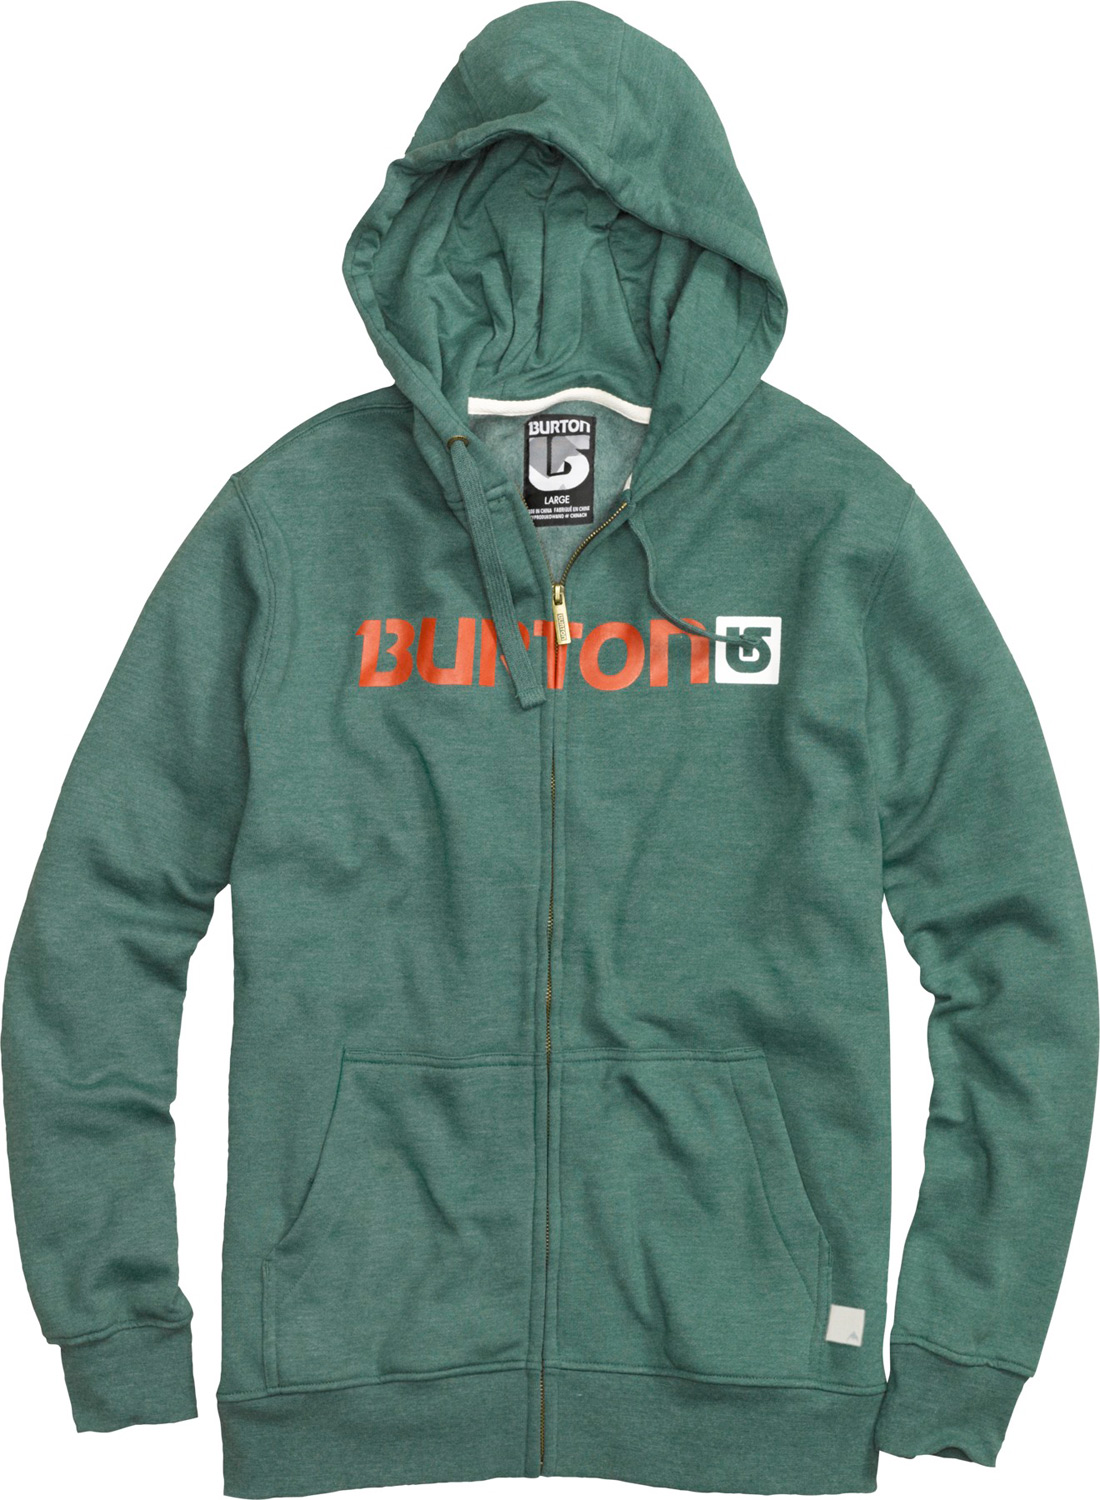 Snowboard Key Features of the Burton Logo Horizontal Fullzip Hoodie: 80% Cotton, 20% Polyester, 300G Fleece screen Print on Chest regular Fit - $35.95